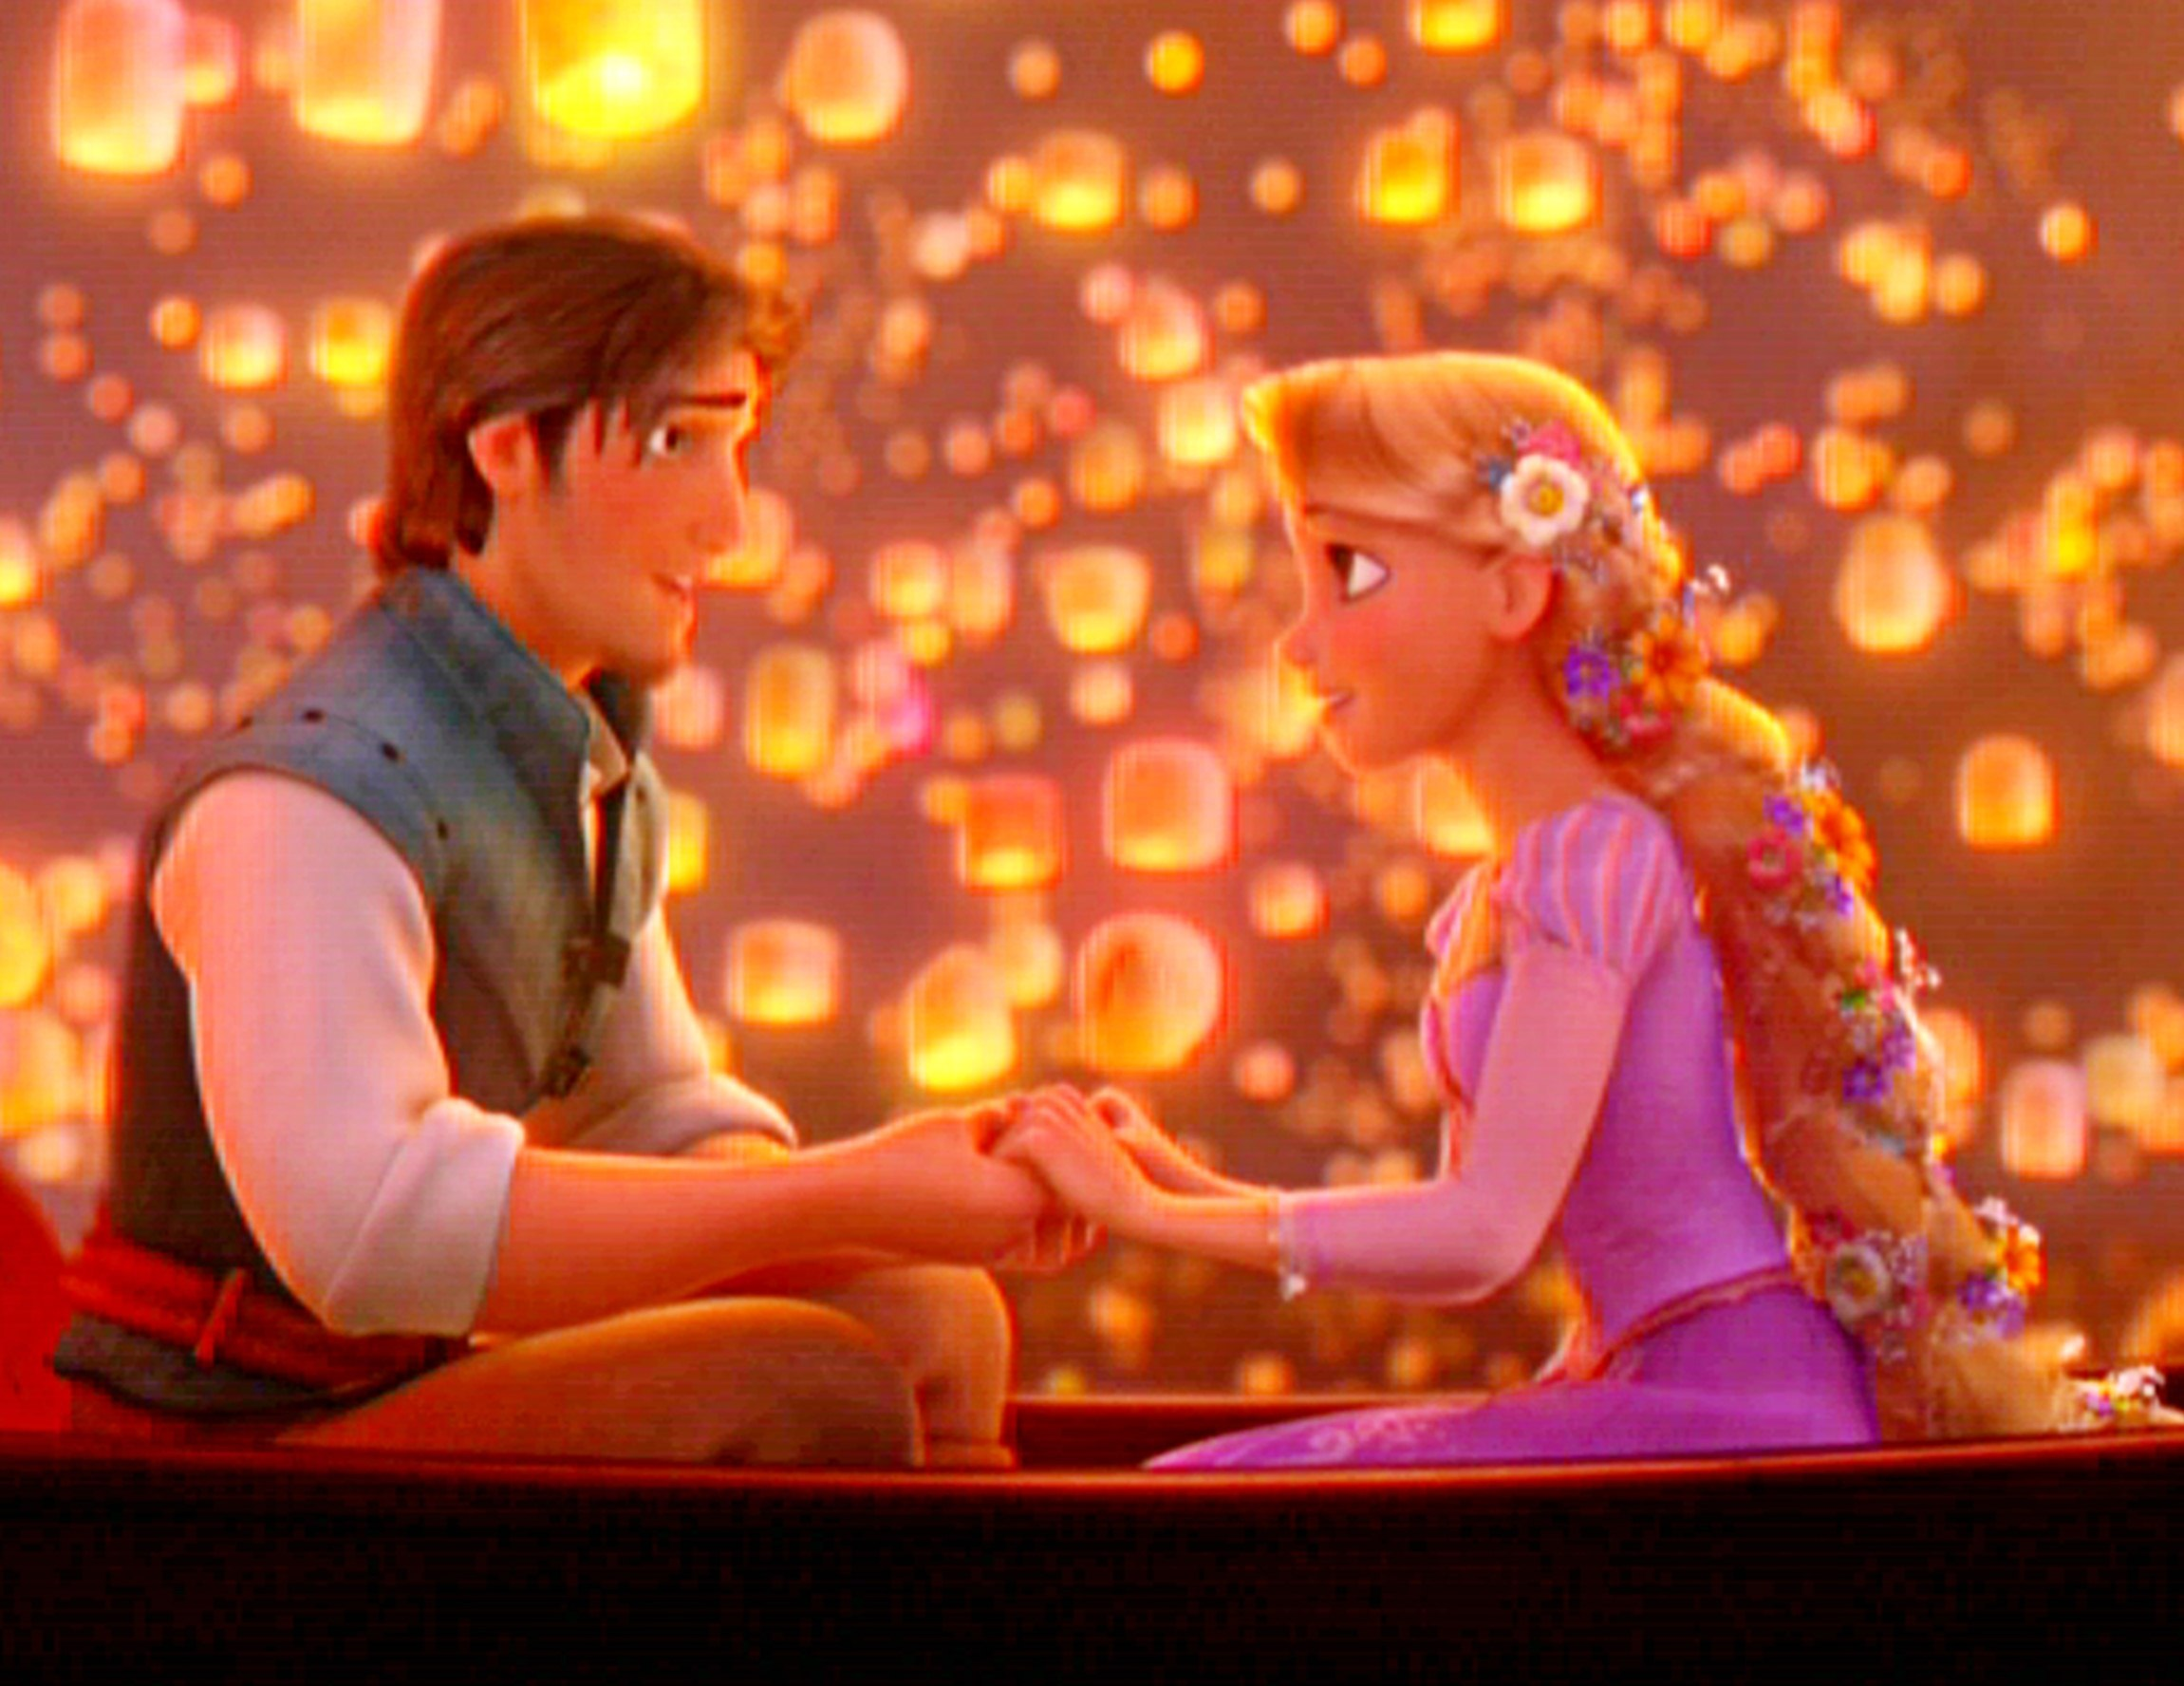 Gallery Of Tangled Wallpaper I See The Light Scene With